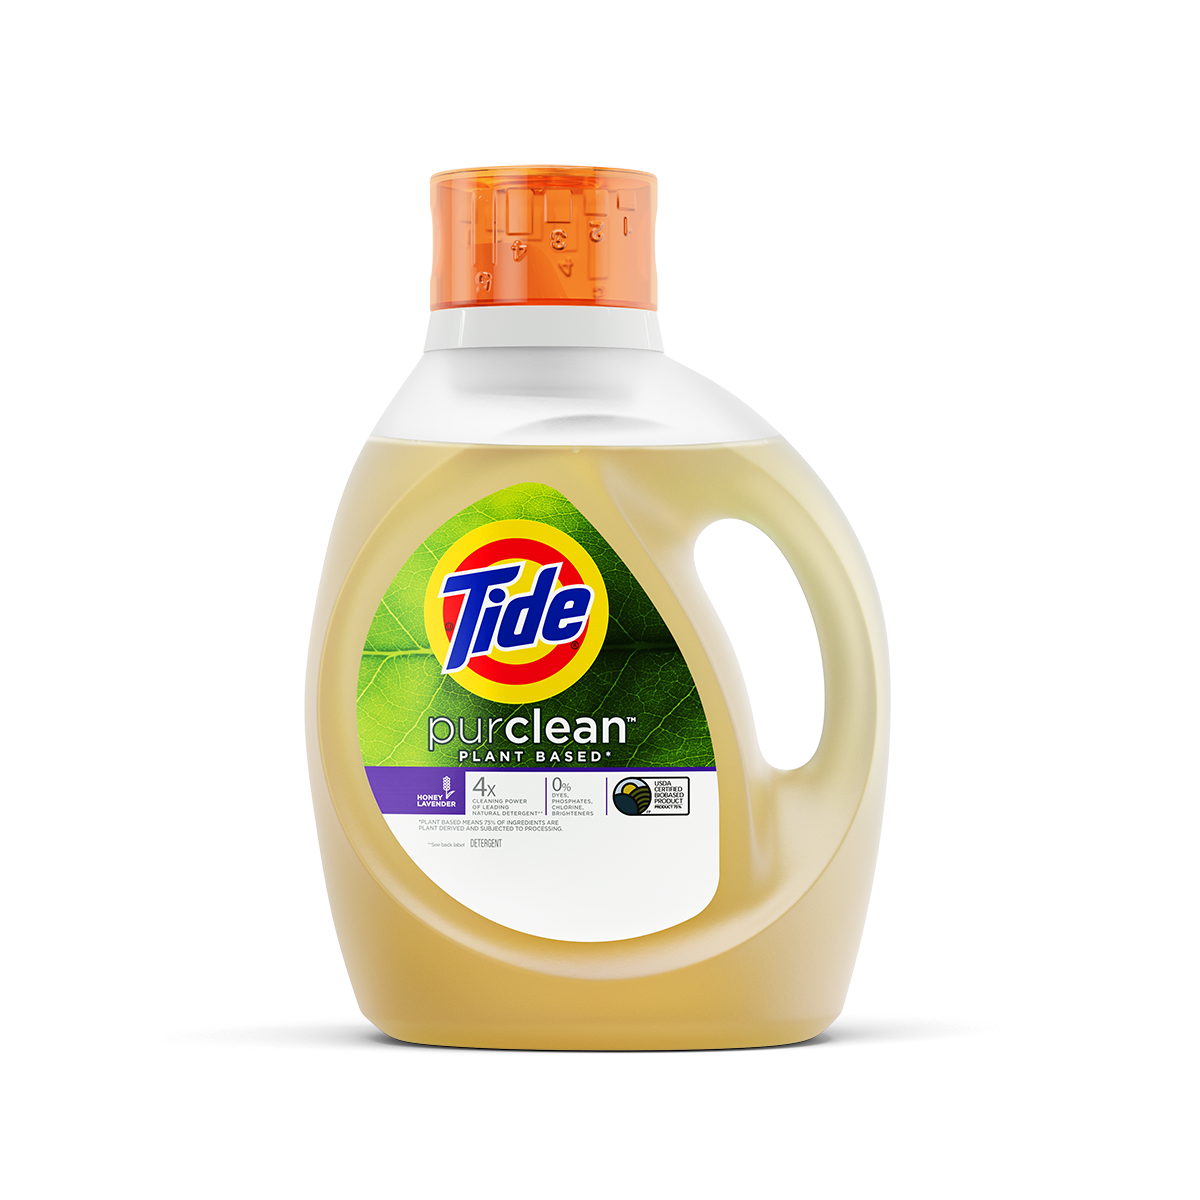 Tide purclean Liquid